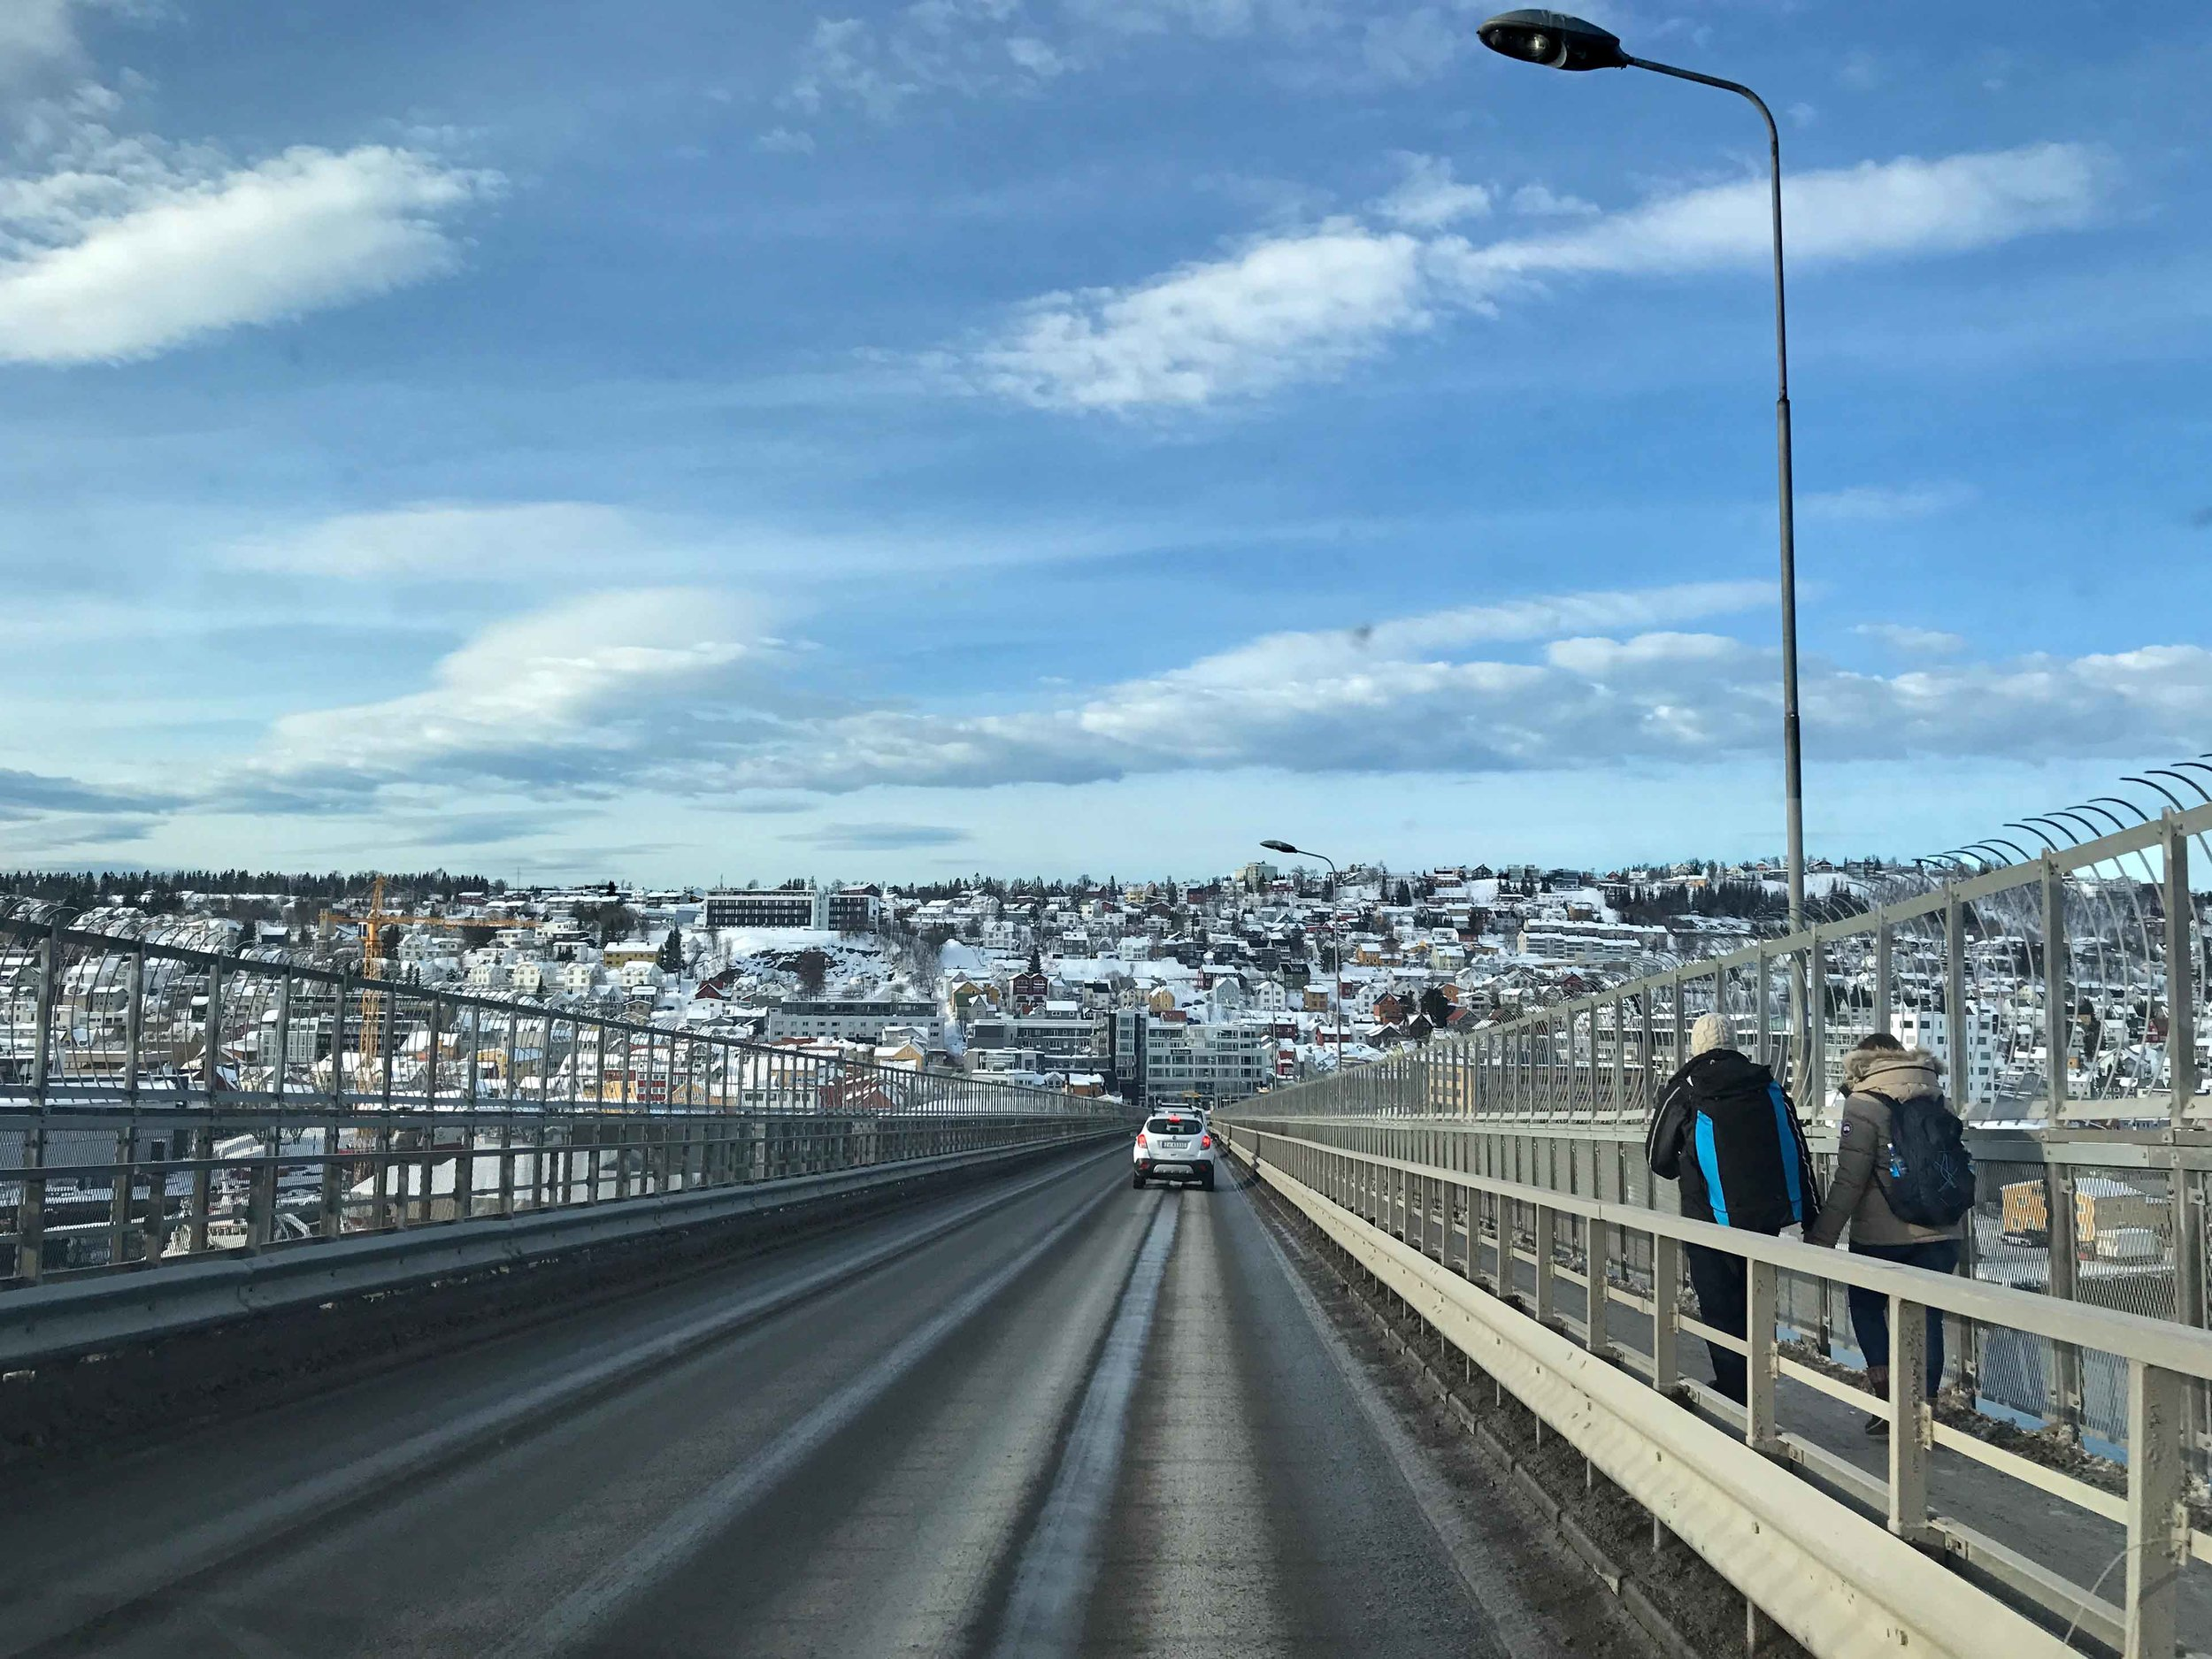 Bridge in Tromso, Norway. Image©thingstodot.com